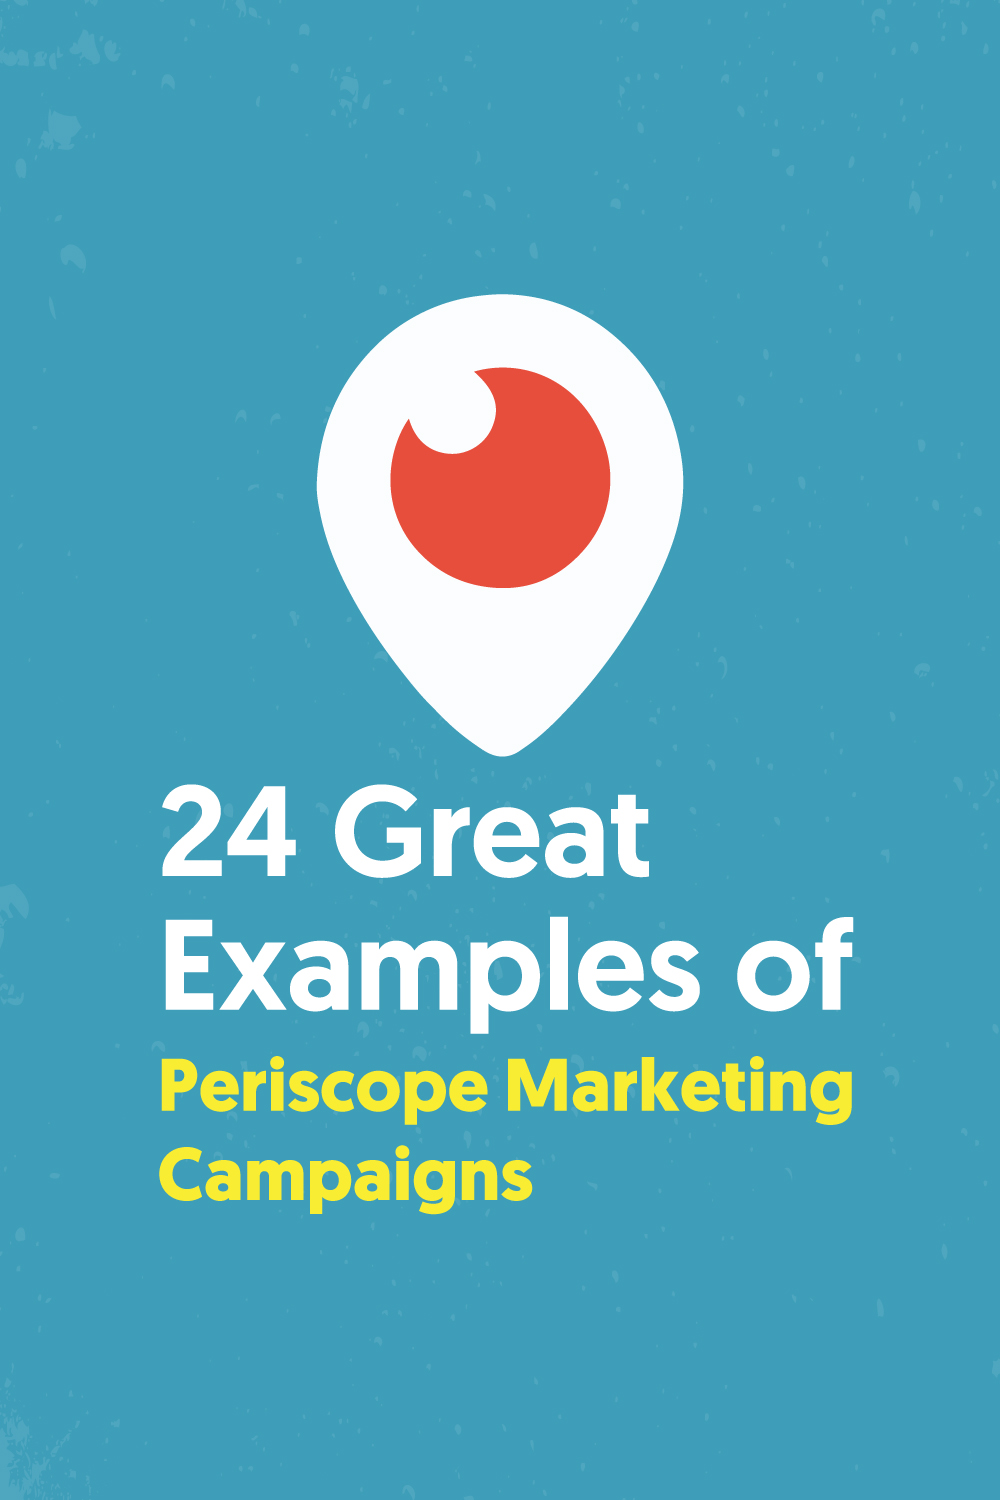 With 10 million users, Periscope marketing is a tremendously effective way to engage with your brand followers—so get inspiration by these companies!